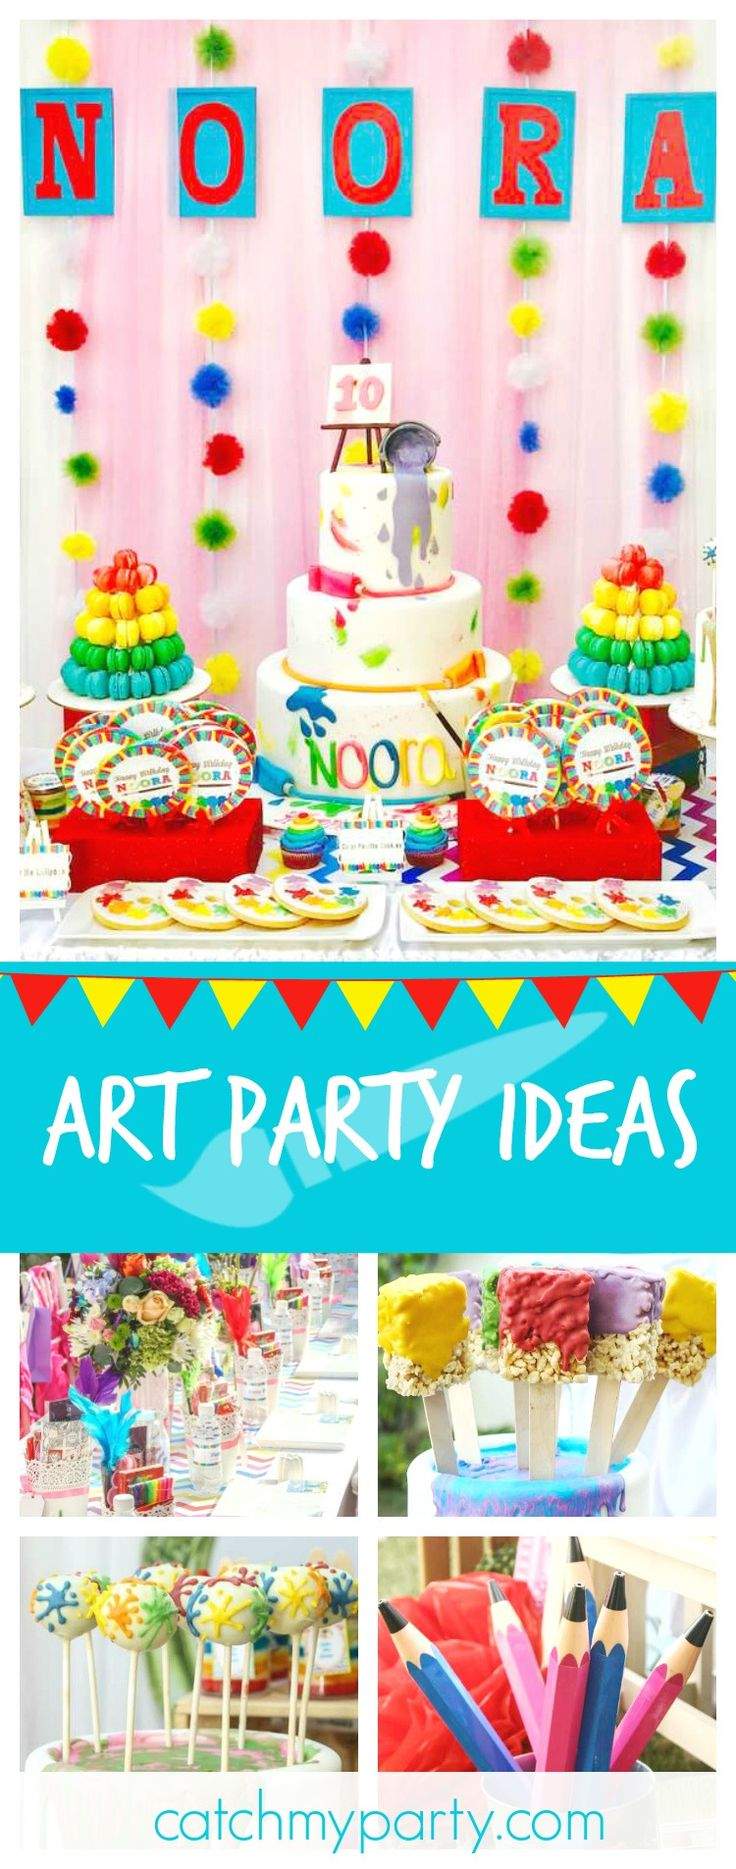 Check out this awesome Art Studio birthday party. The paintbrush krispie treats are fantastic!! See more party ideas and share yours at CatchMyparty.com